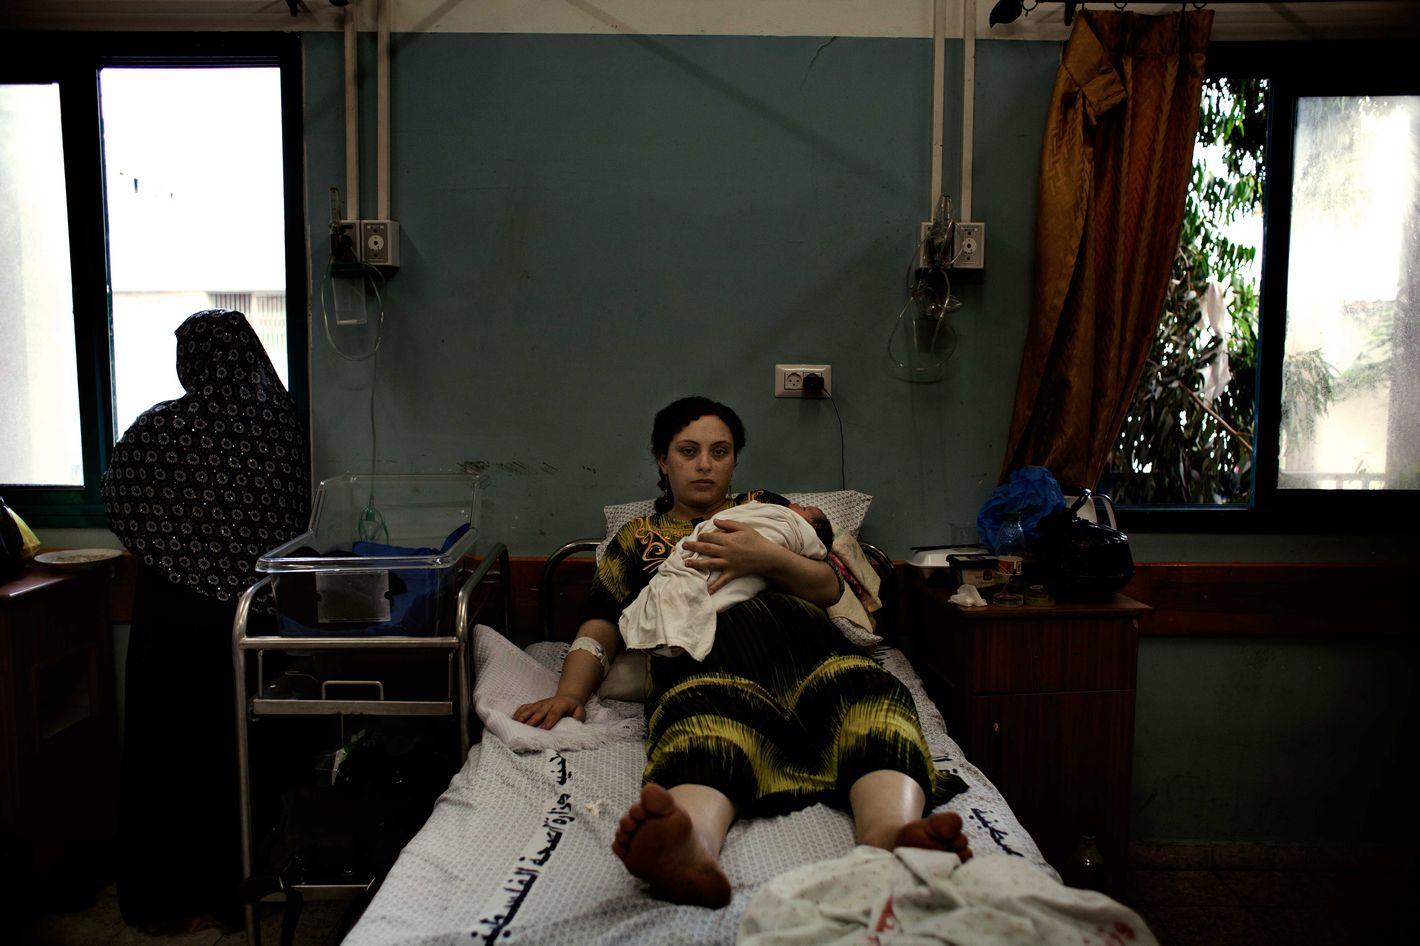 Maysa rests in a hospital bed after having given birth to a son, her 4th child. She lives in the Shatha camp and will go back home soon although numerous notifications from Israeli defense forces regarding homes that will be destroyed in airstrikes in the area makes her feel unsafe.